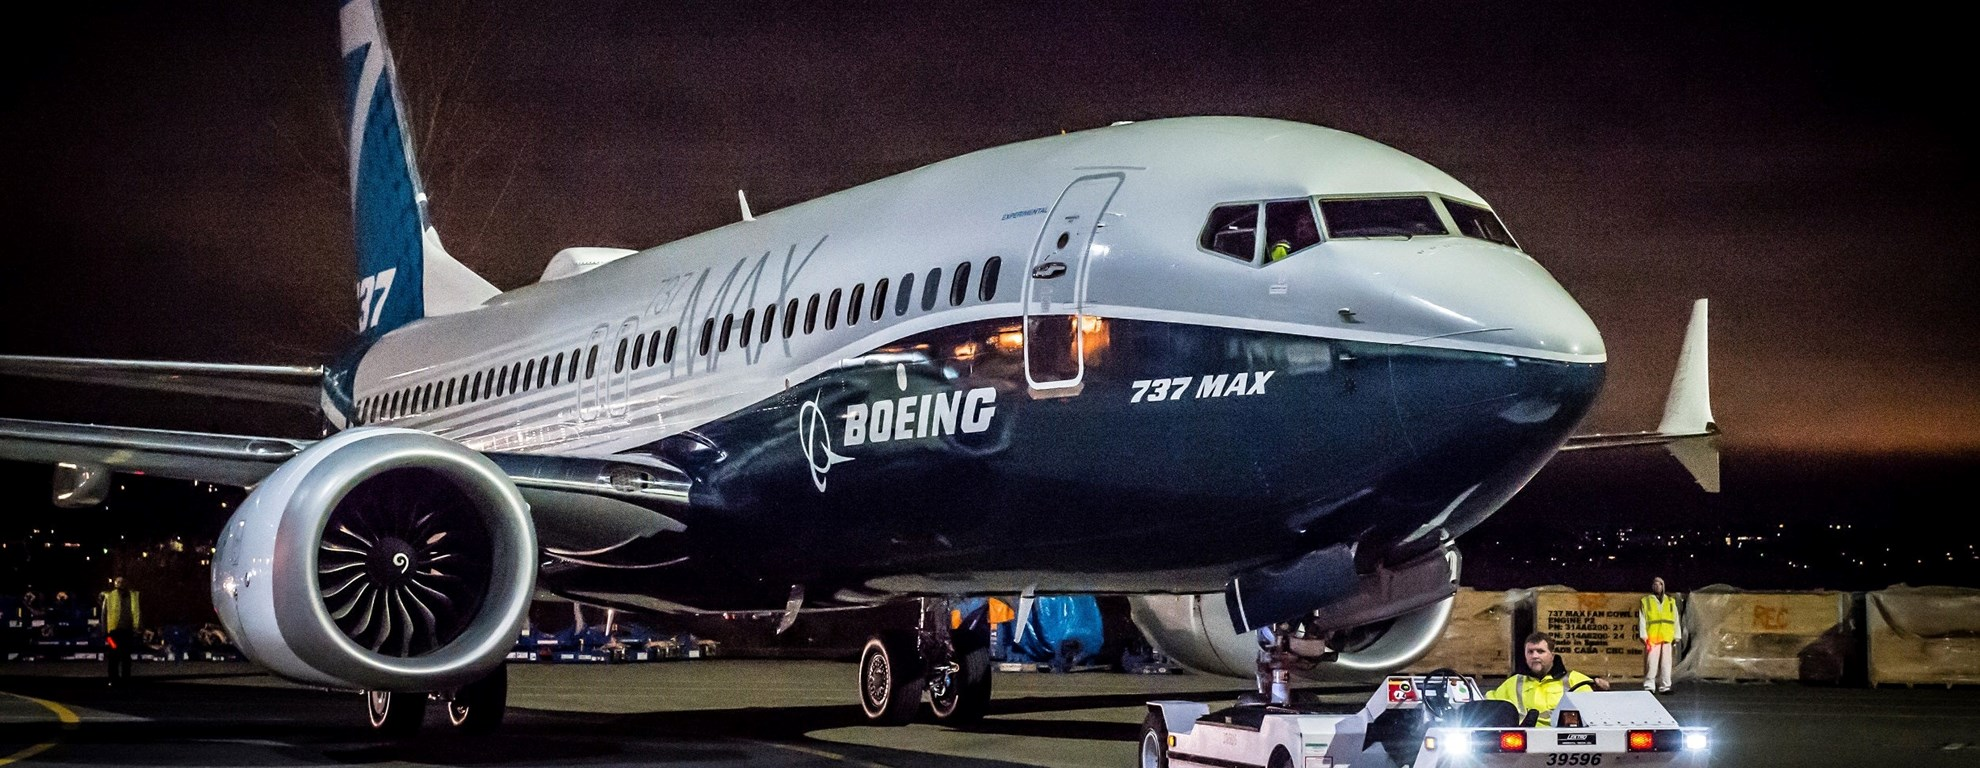 LIFTING OF BAN ON BOEING 737 MAX AIRCRAFT image